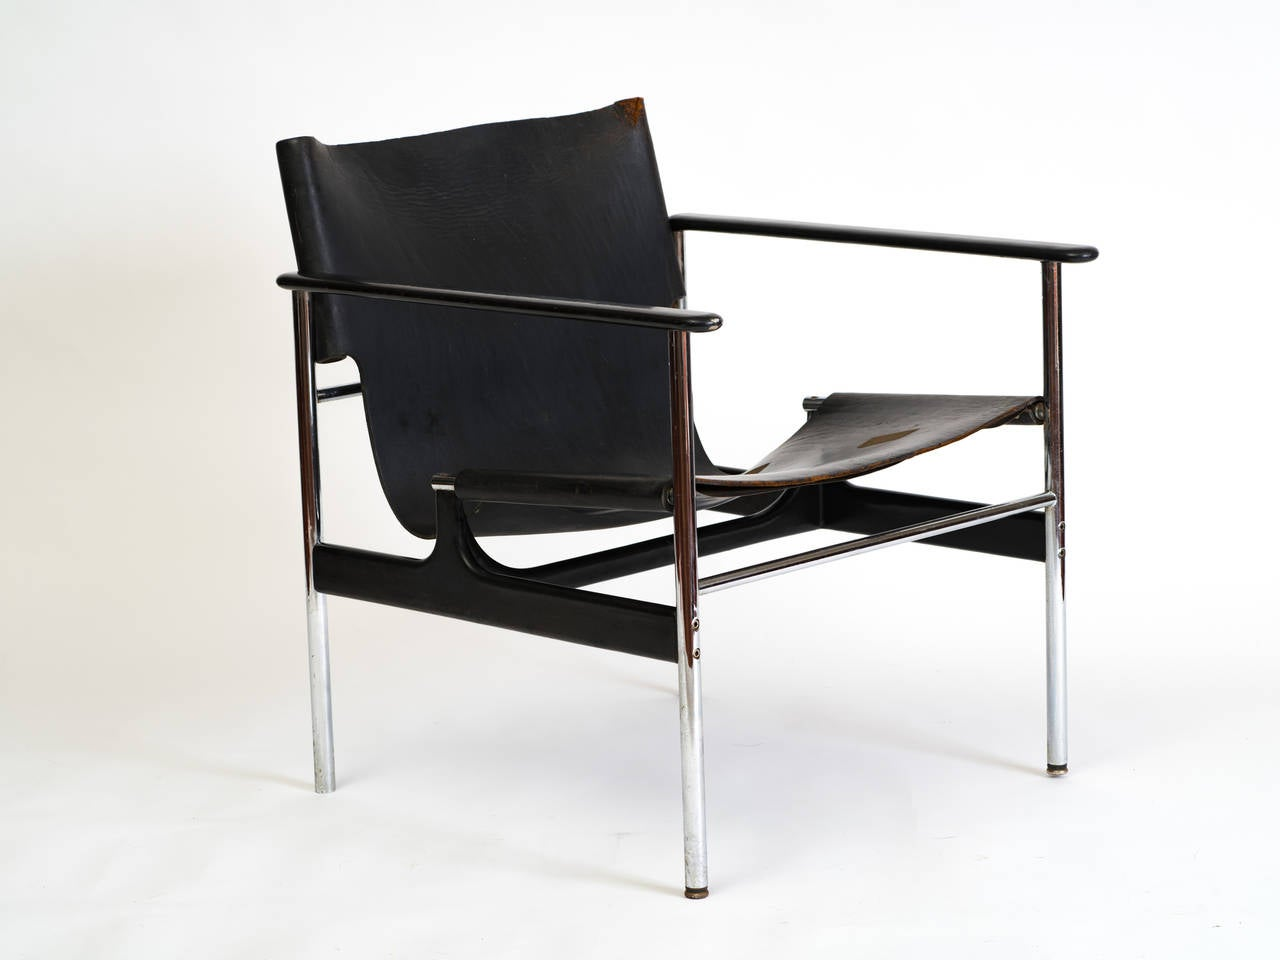 Model 657 sling chair designed by Charles Pollock for Knoll.